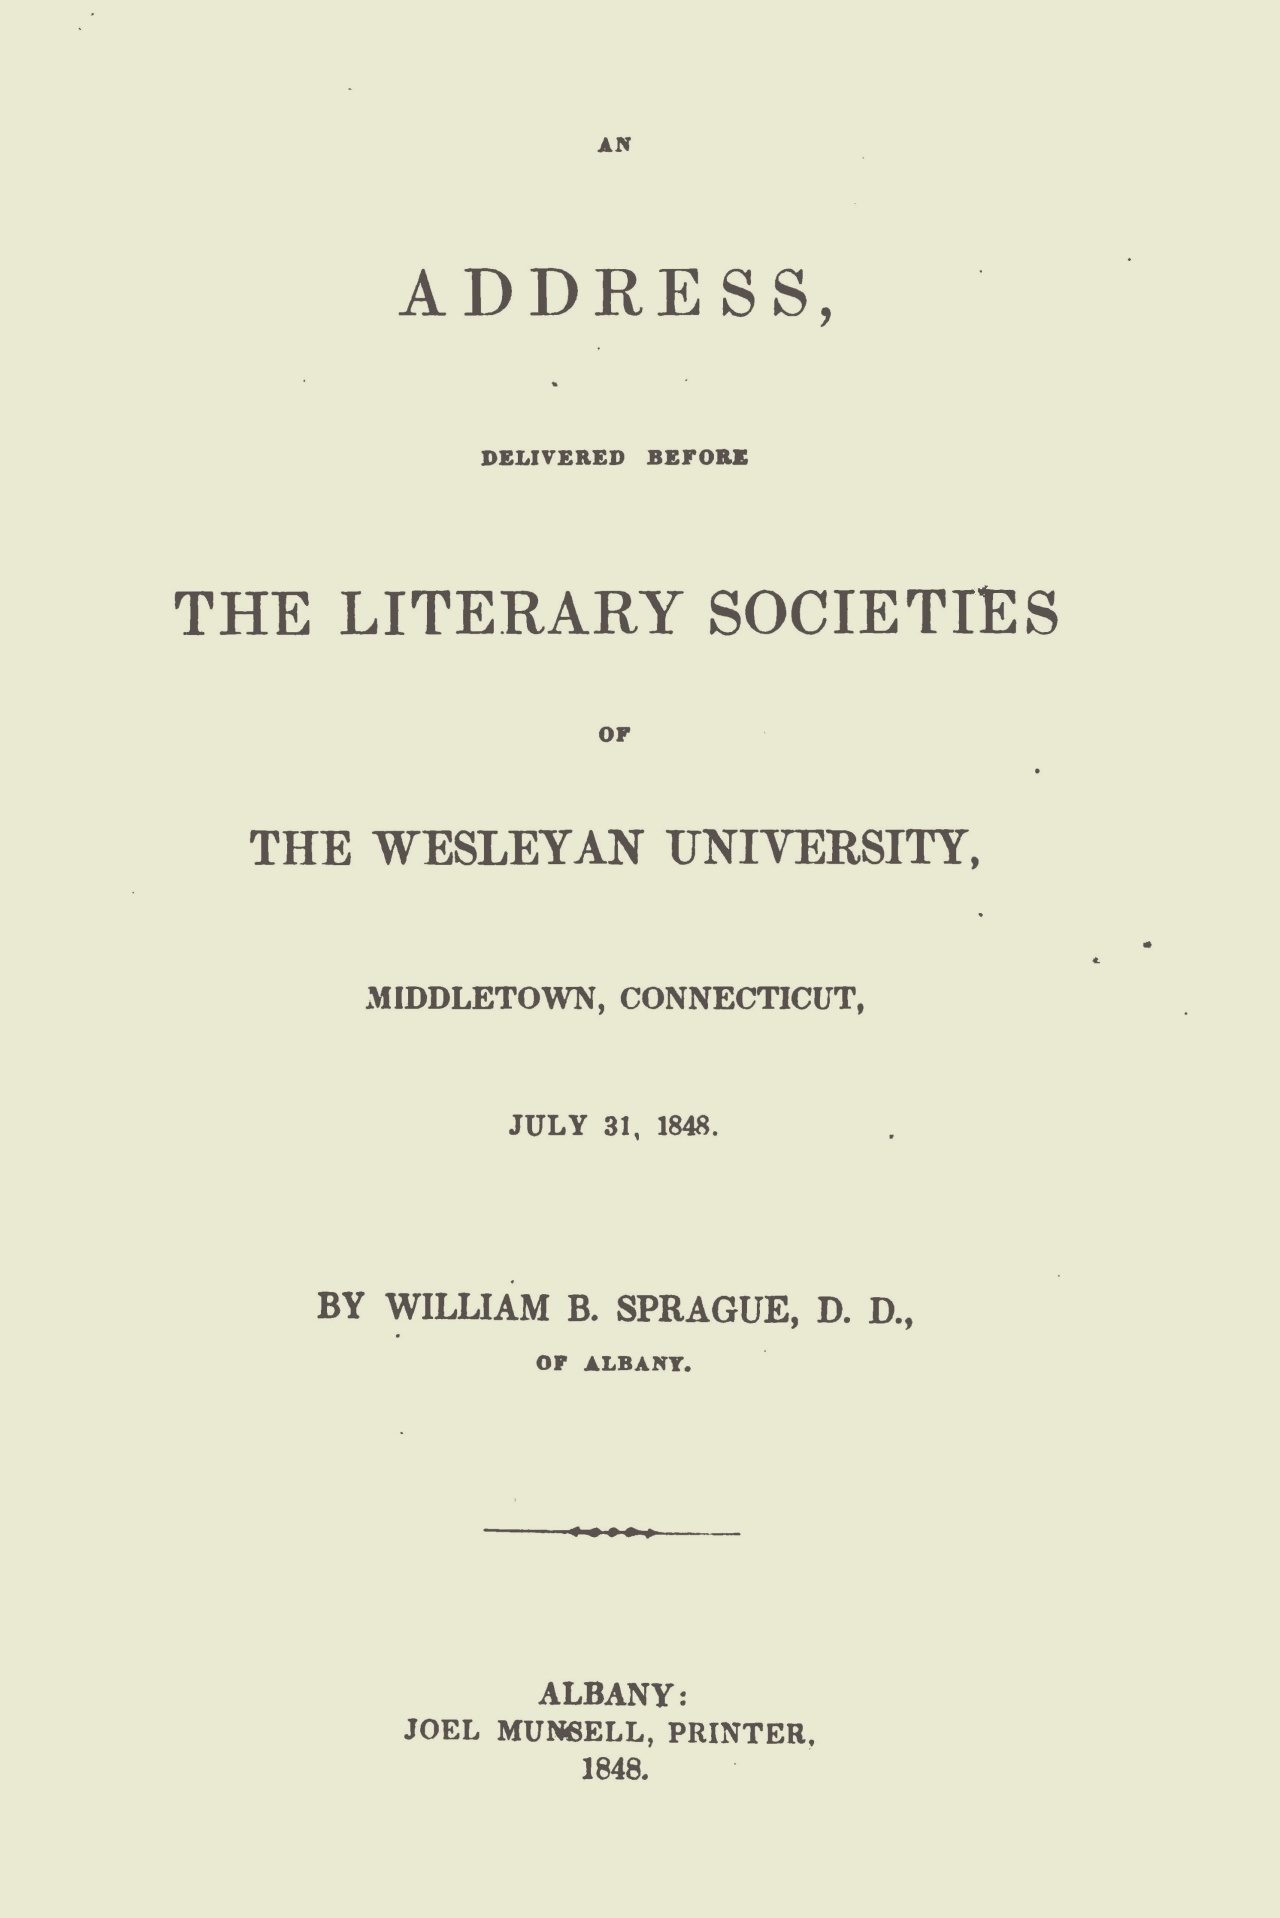 Sprague, William Buell, An Address Delivered Before the Literary Societies re William Wilberforce Title Page.jpg